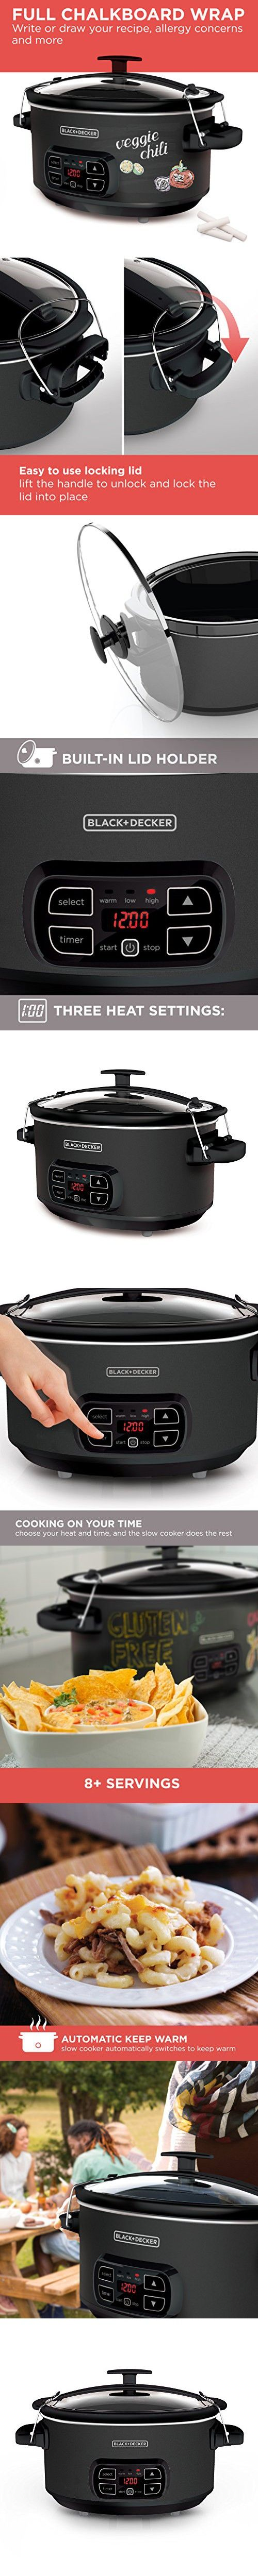 BLACK+DECKER SCD4007 7 Quart Programmable Slow Cooker with Digital Timer, Portable Slow Cooker with Locking Lid, Chalkboard Surface (Chalk Included)